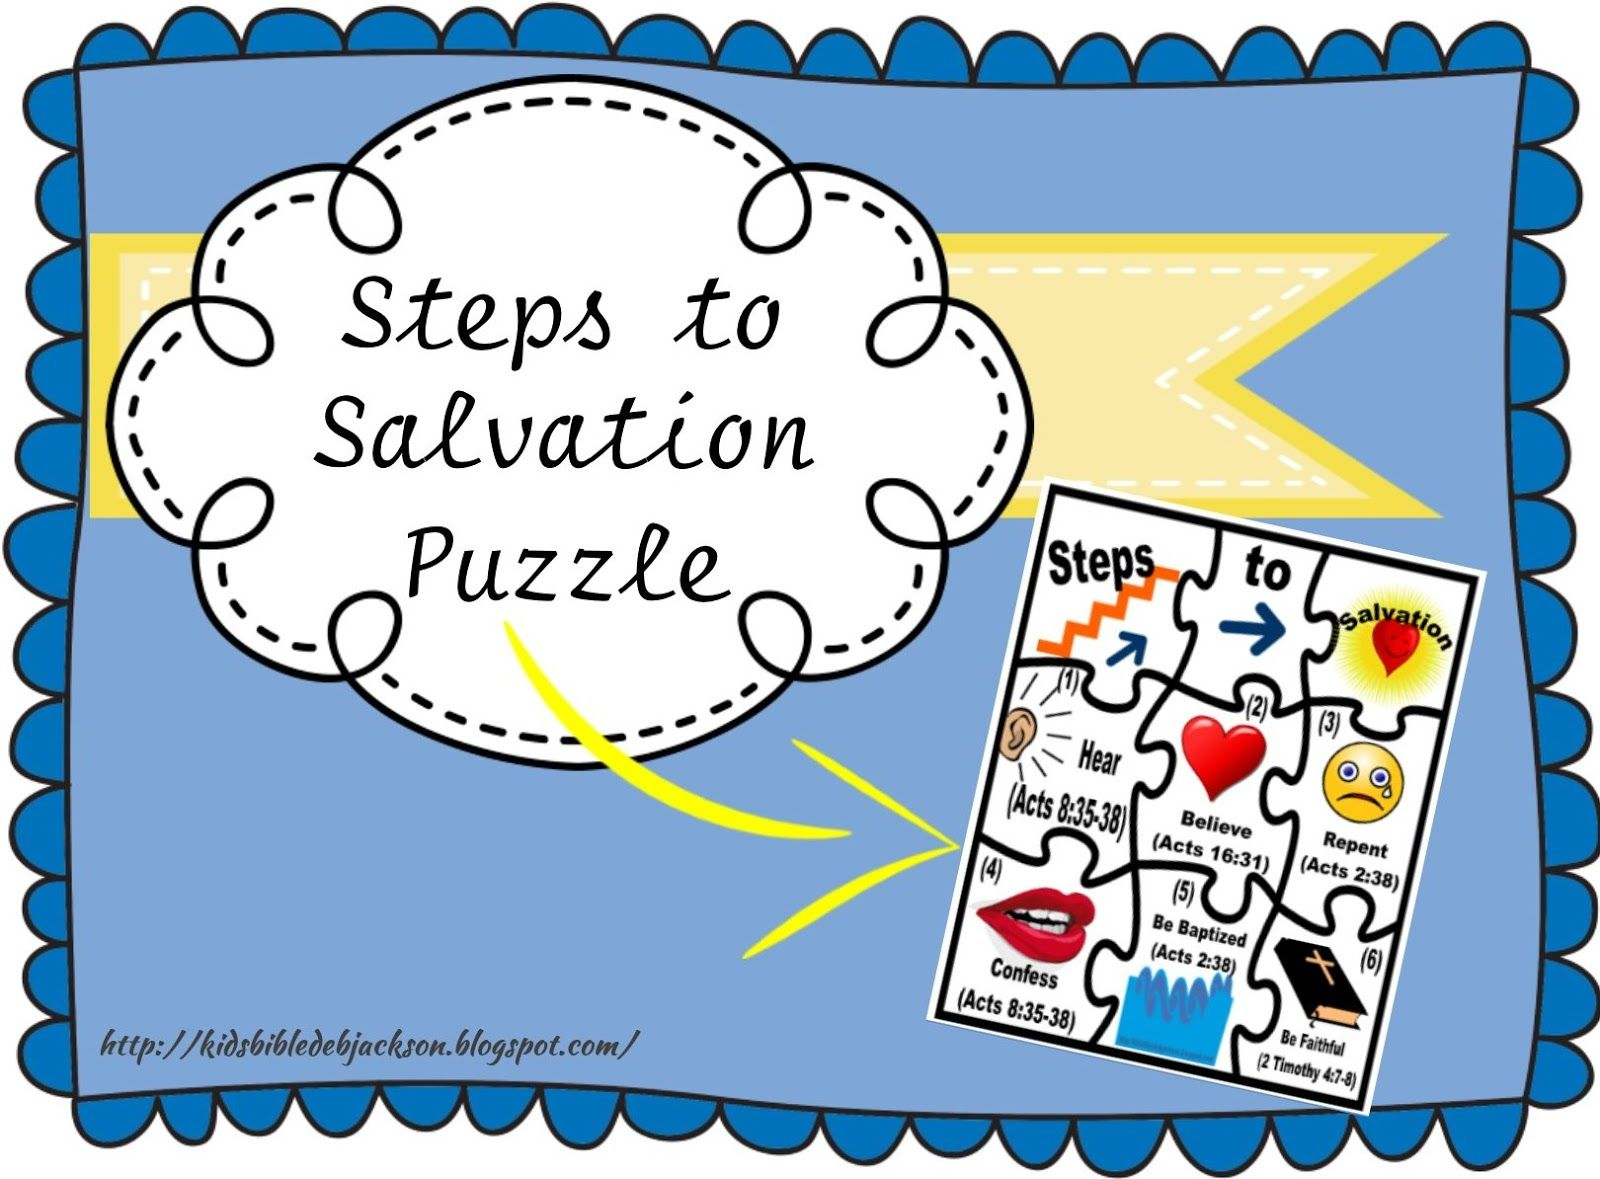 Coloring pages for preschoolers on salavation - Steps To Salvation Puzzle